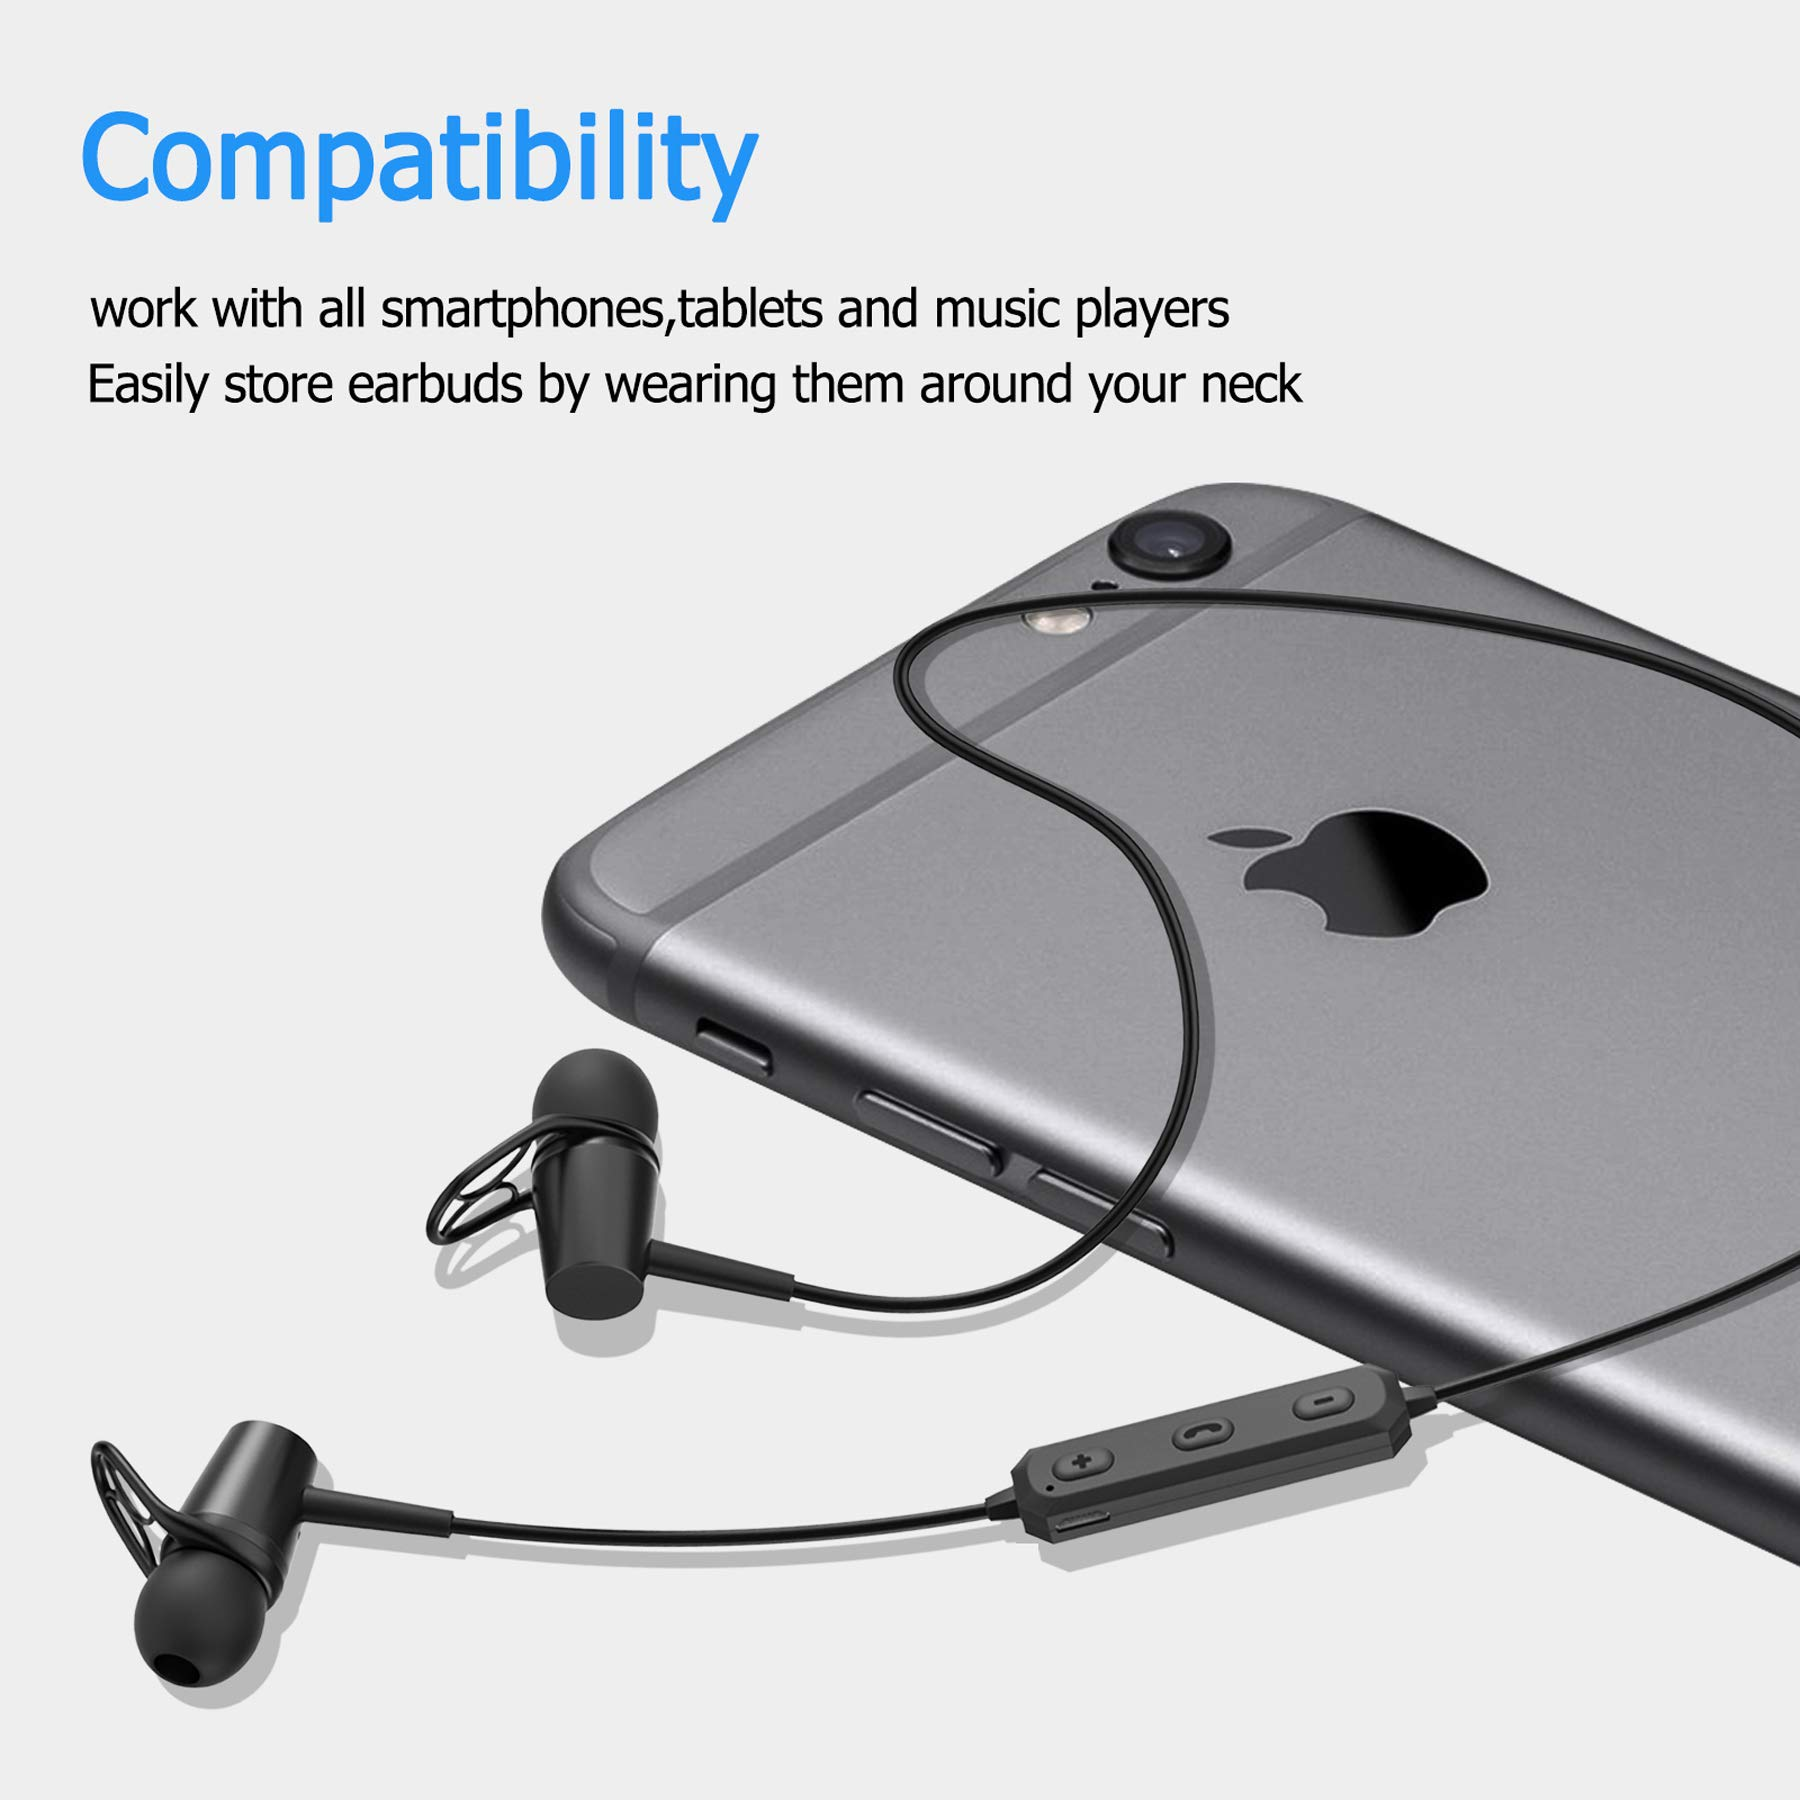 Bluetooth Earphones, Bluetooth 4.2 Magnetic Earphones, in-Ear Sweatproof Headphones with Mic for Running Gym Workout by BOQXIN (Image #7)